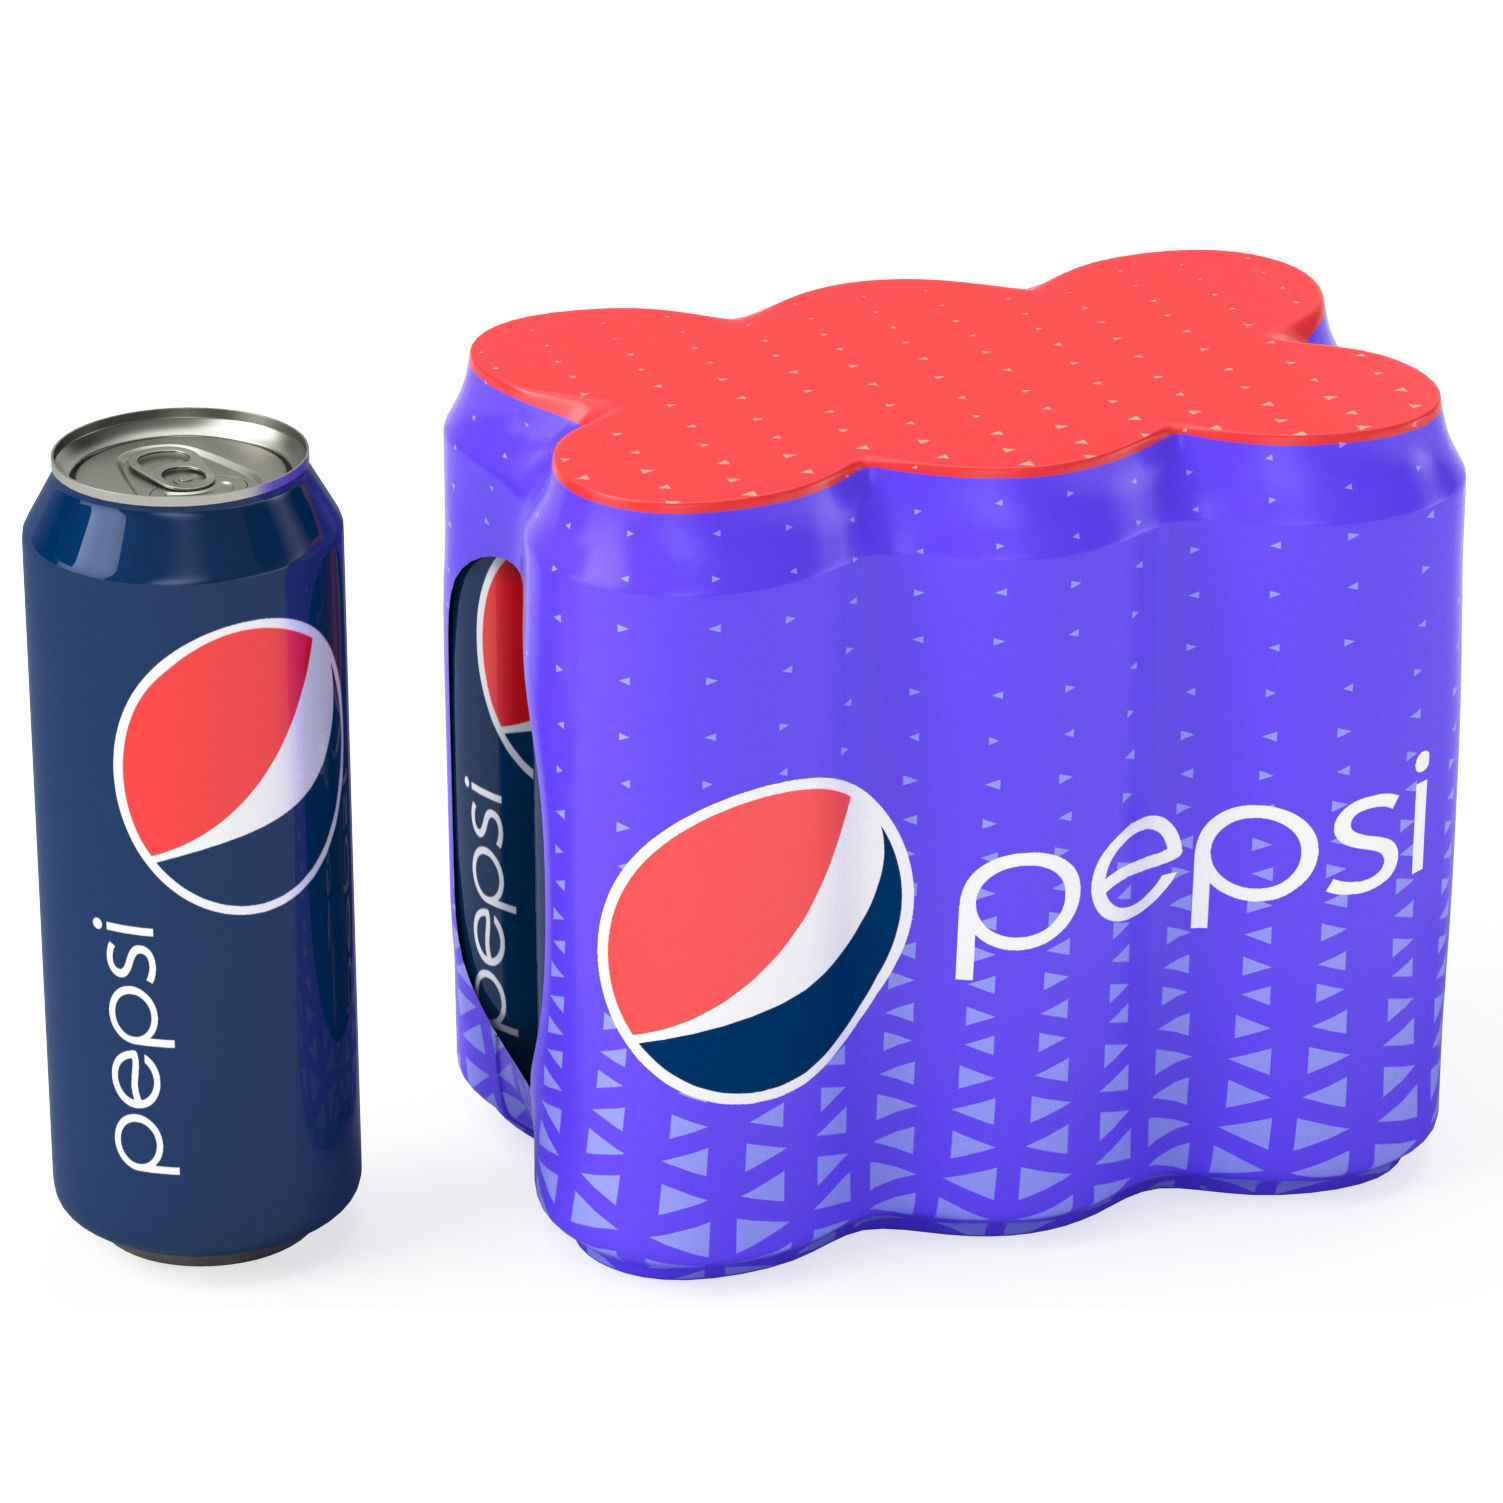 Six Pack of Cans Shrinkwrapped Packaging For 250ml 6 Cans